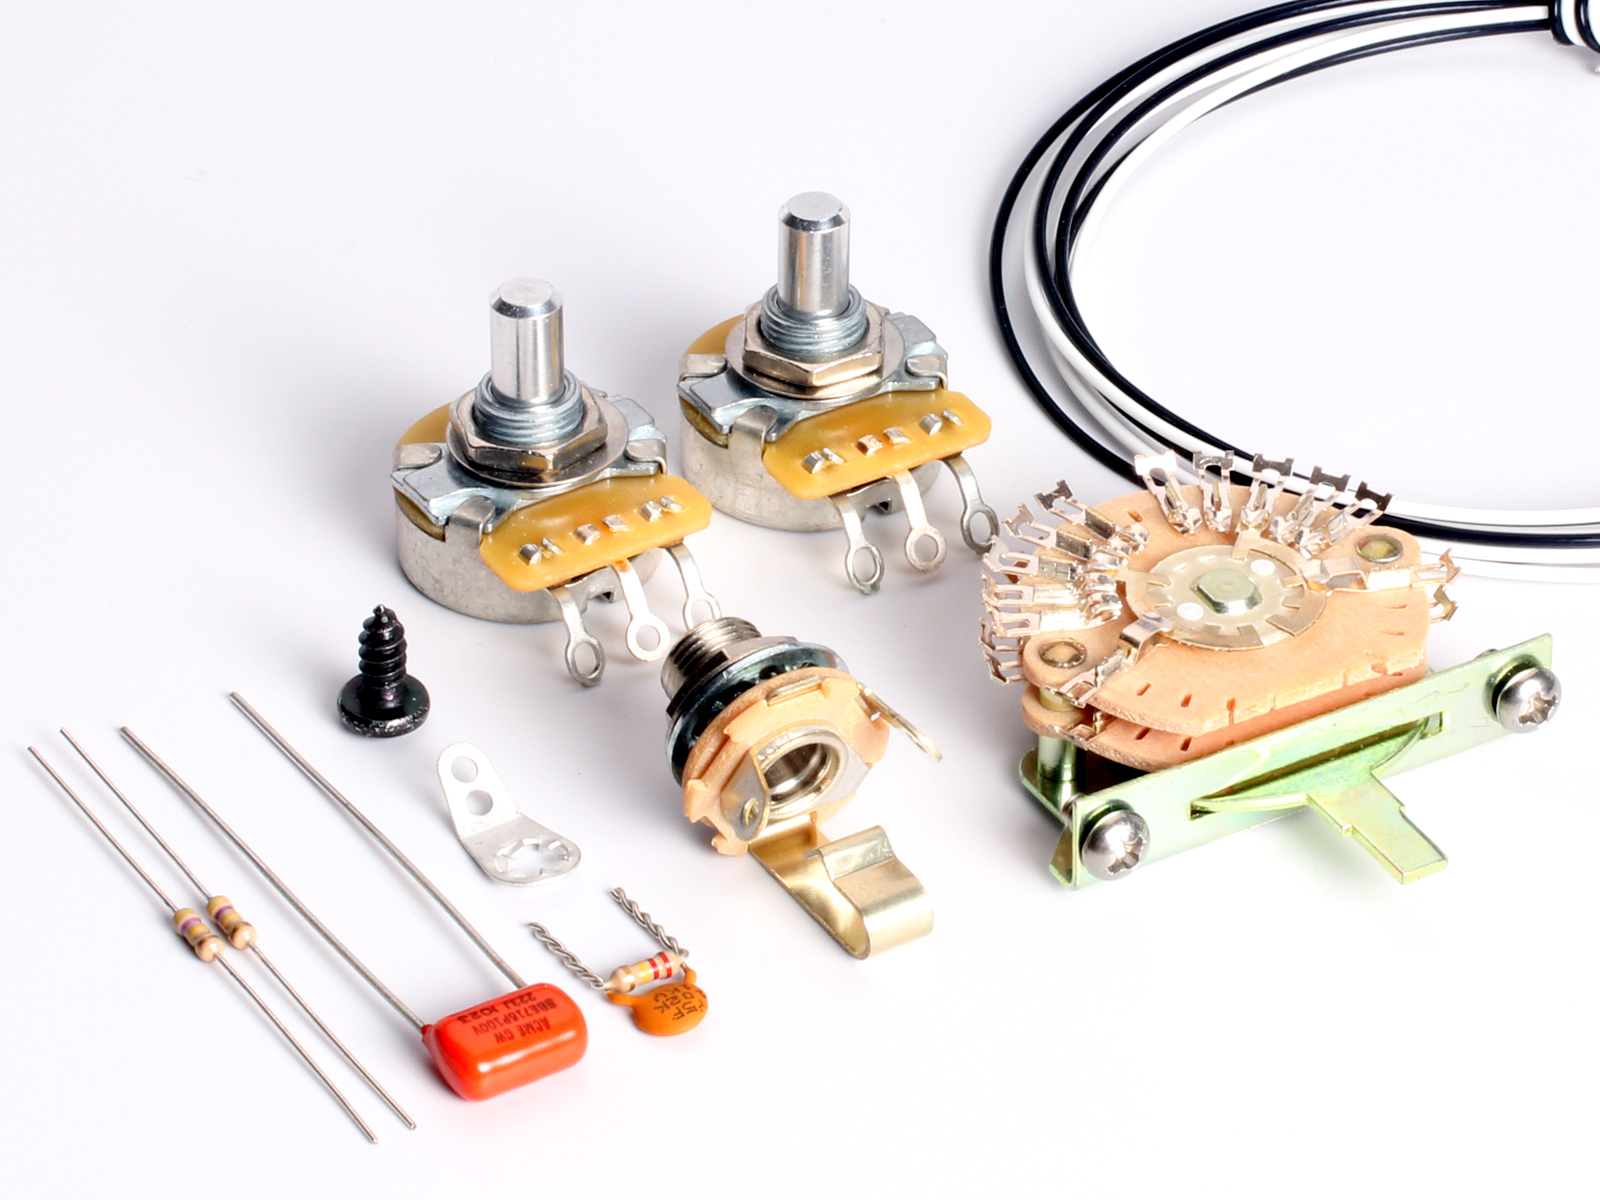 hight resolution of toneshapers wiring kit telecaster hh1 big apple telecaster upgrade kit telecaster wiring kit